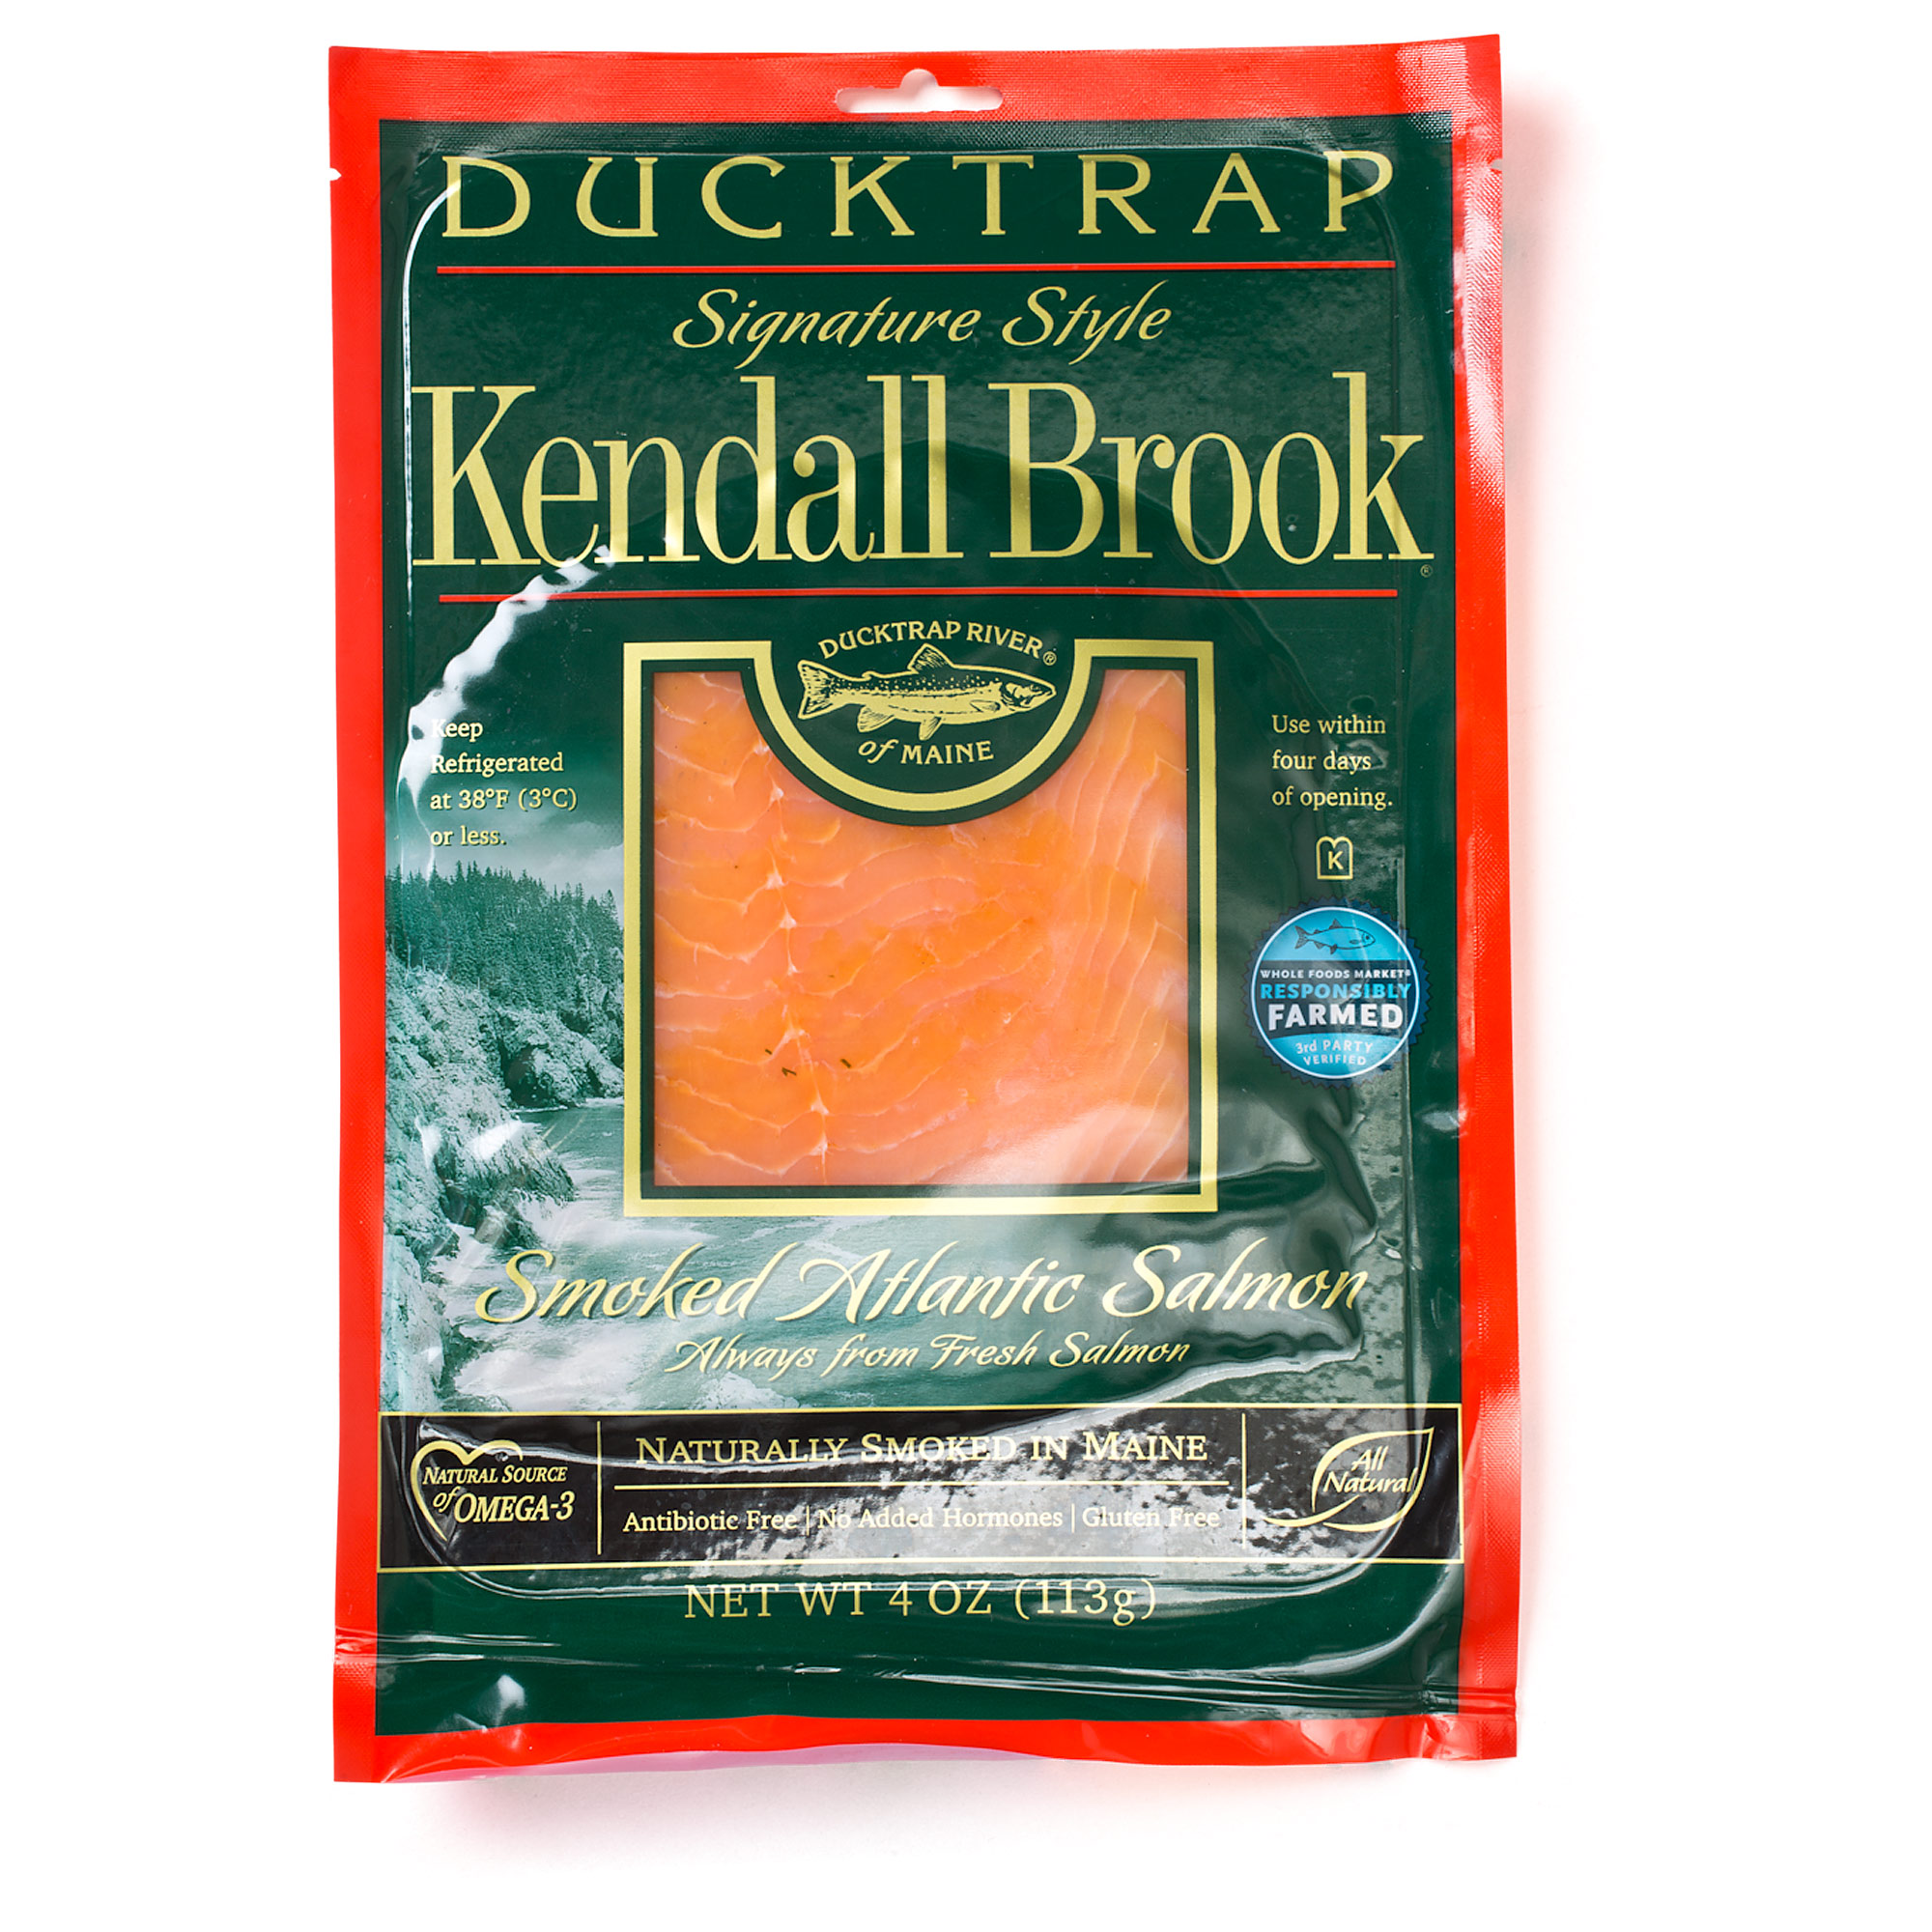 SIL_Smoked_20Salmon_Ducktrap_20Kendall_20Brook_20Cold-Smoked_20Salmon.jpg